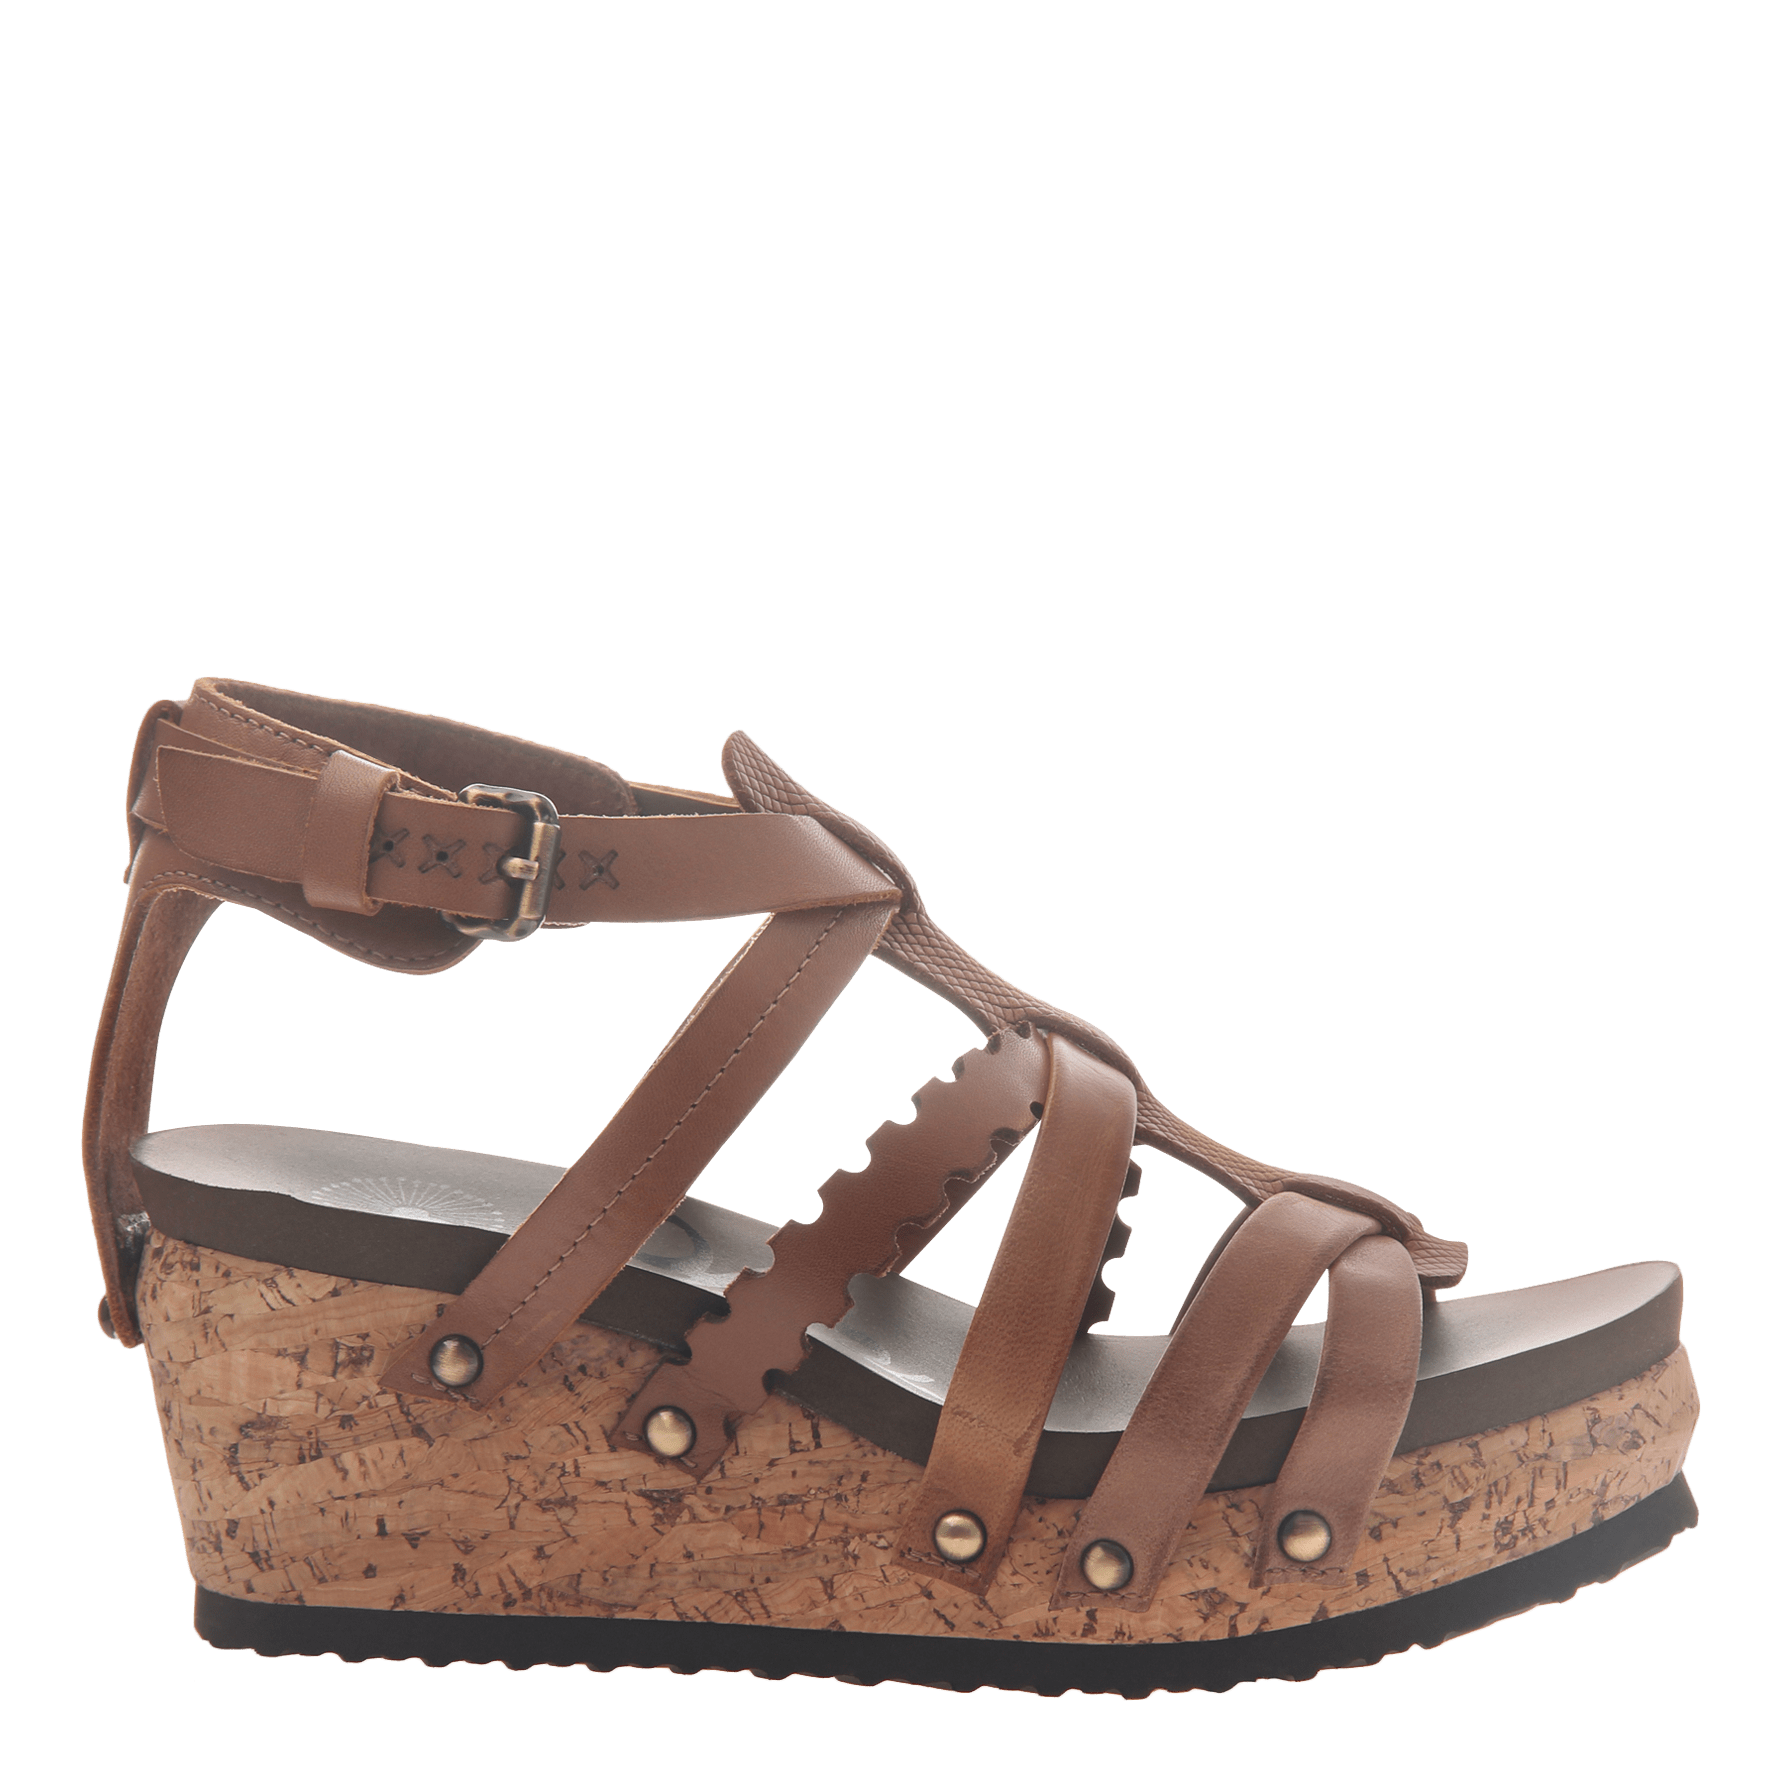 b2d5f1f719d2 Womens wedge gladiator sandal storm in New Brown side view